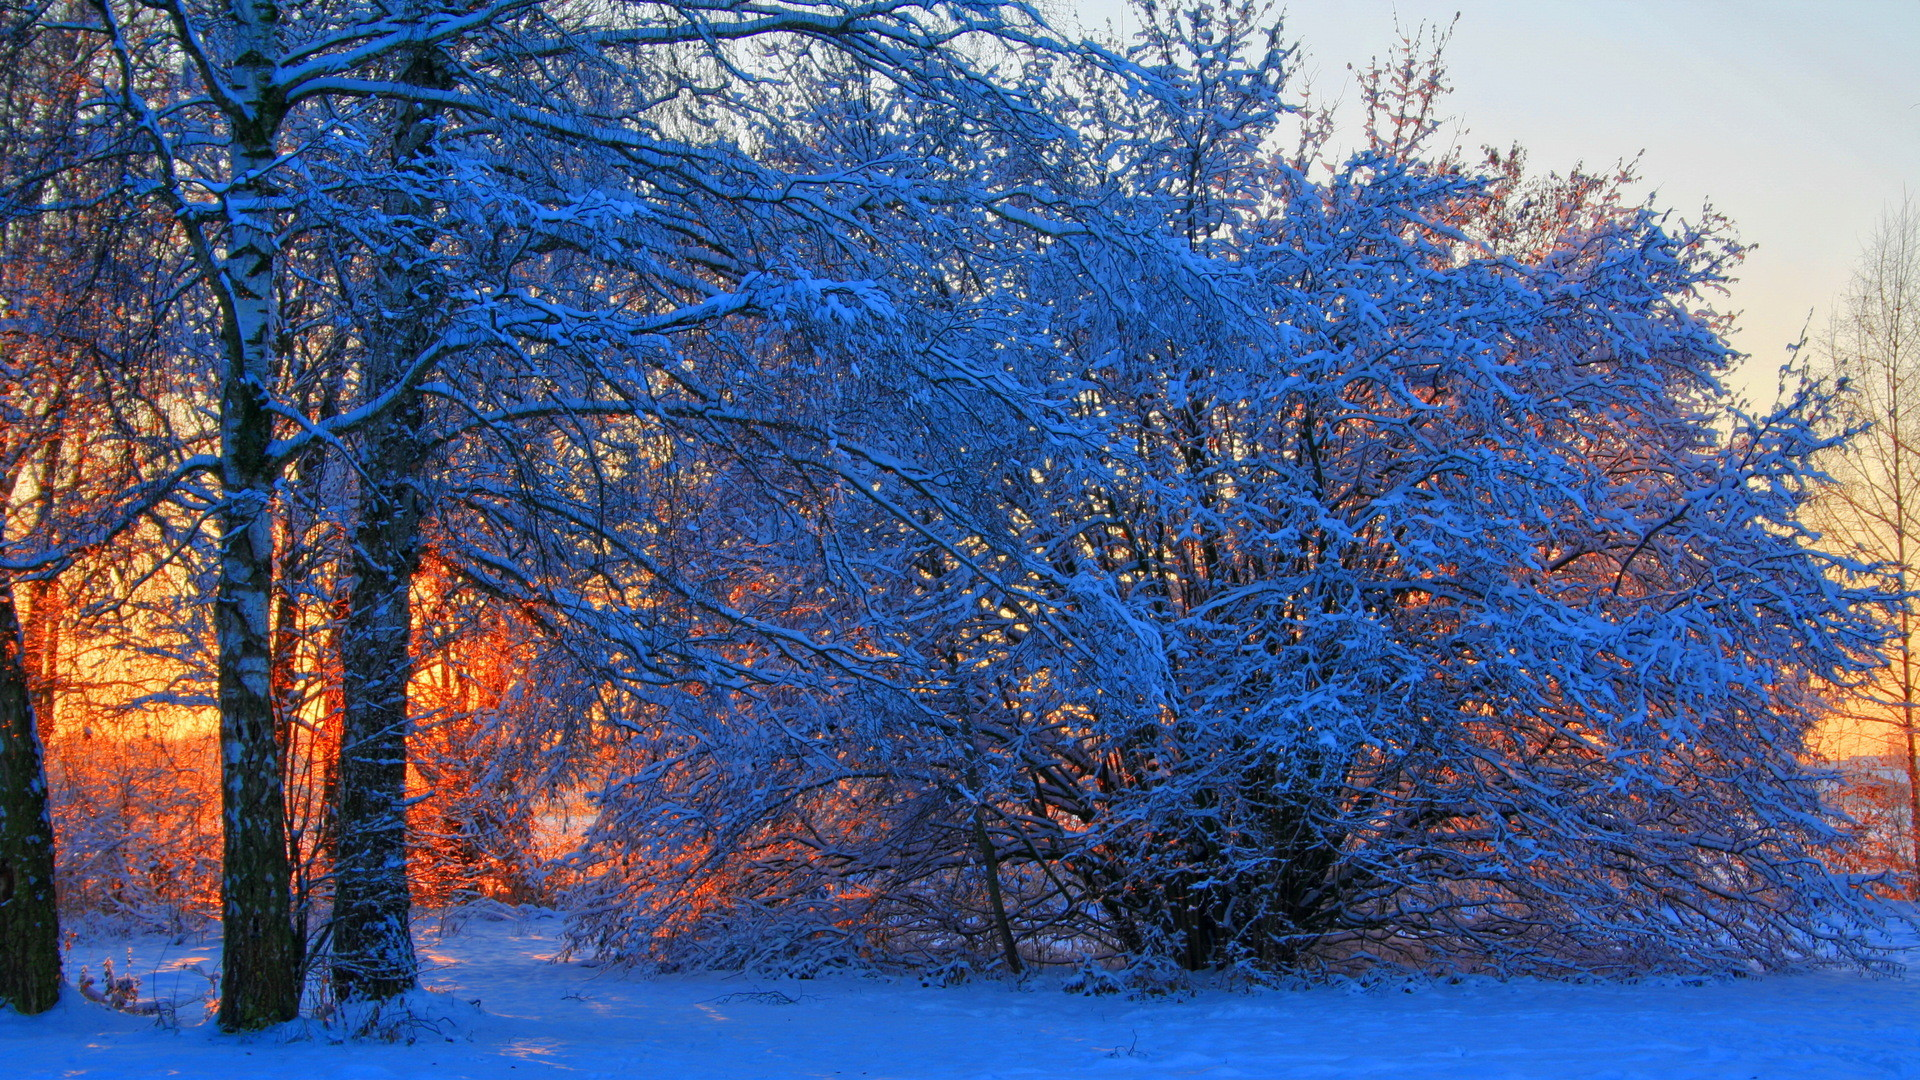 Winter Backgrounds Wallpaper 77 Images